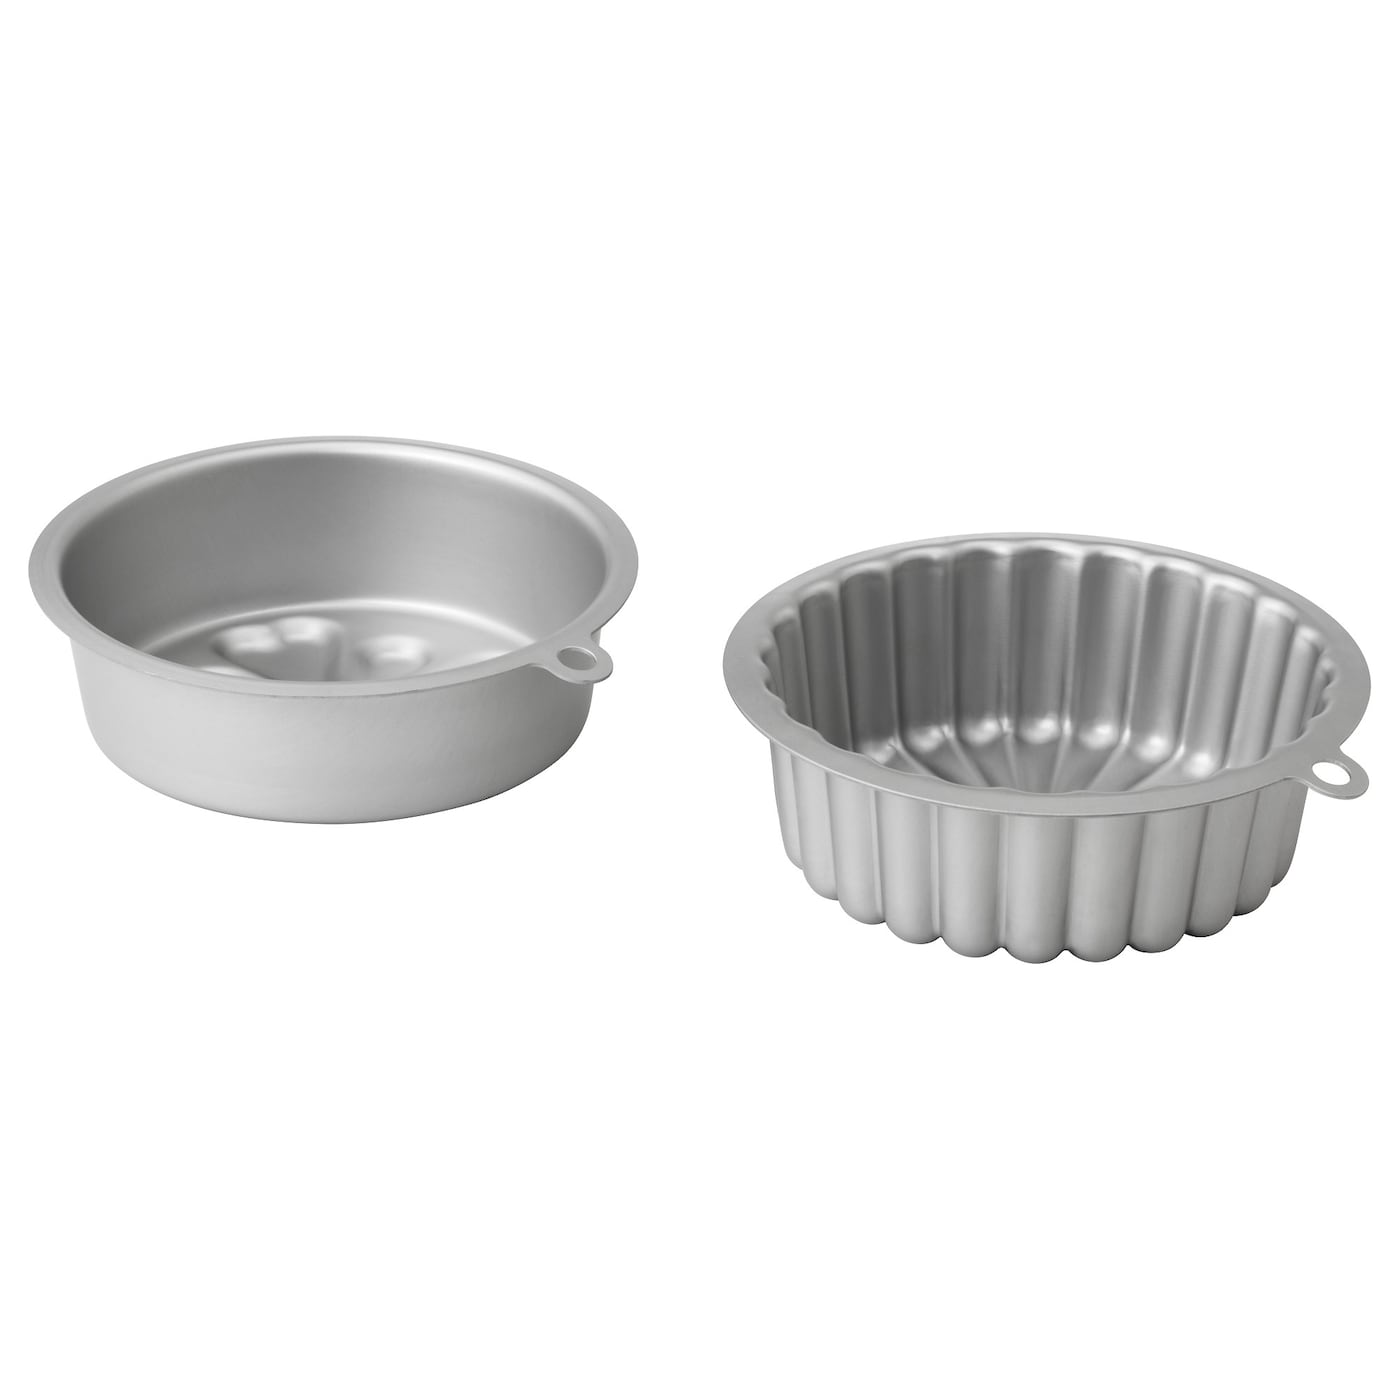 IKEA VARDAGEN baking tin